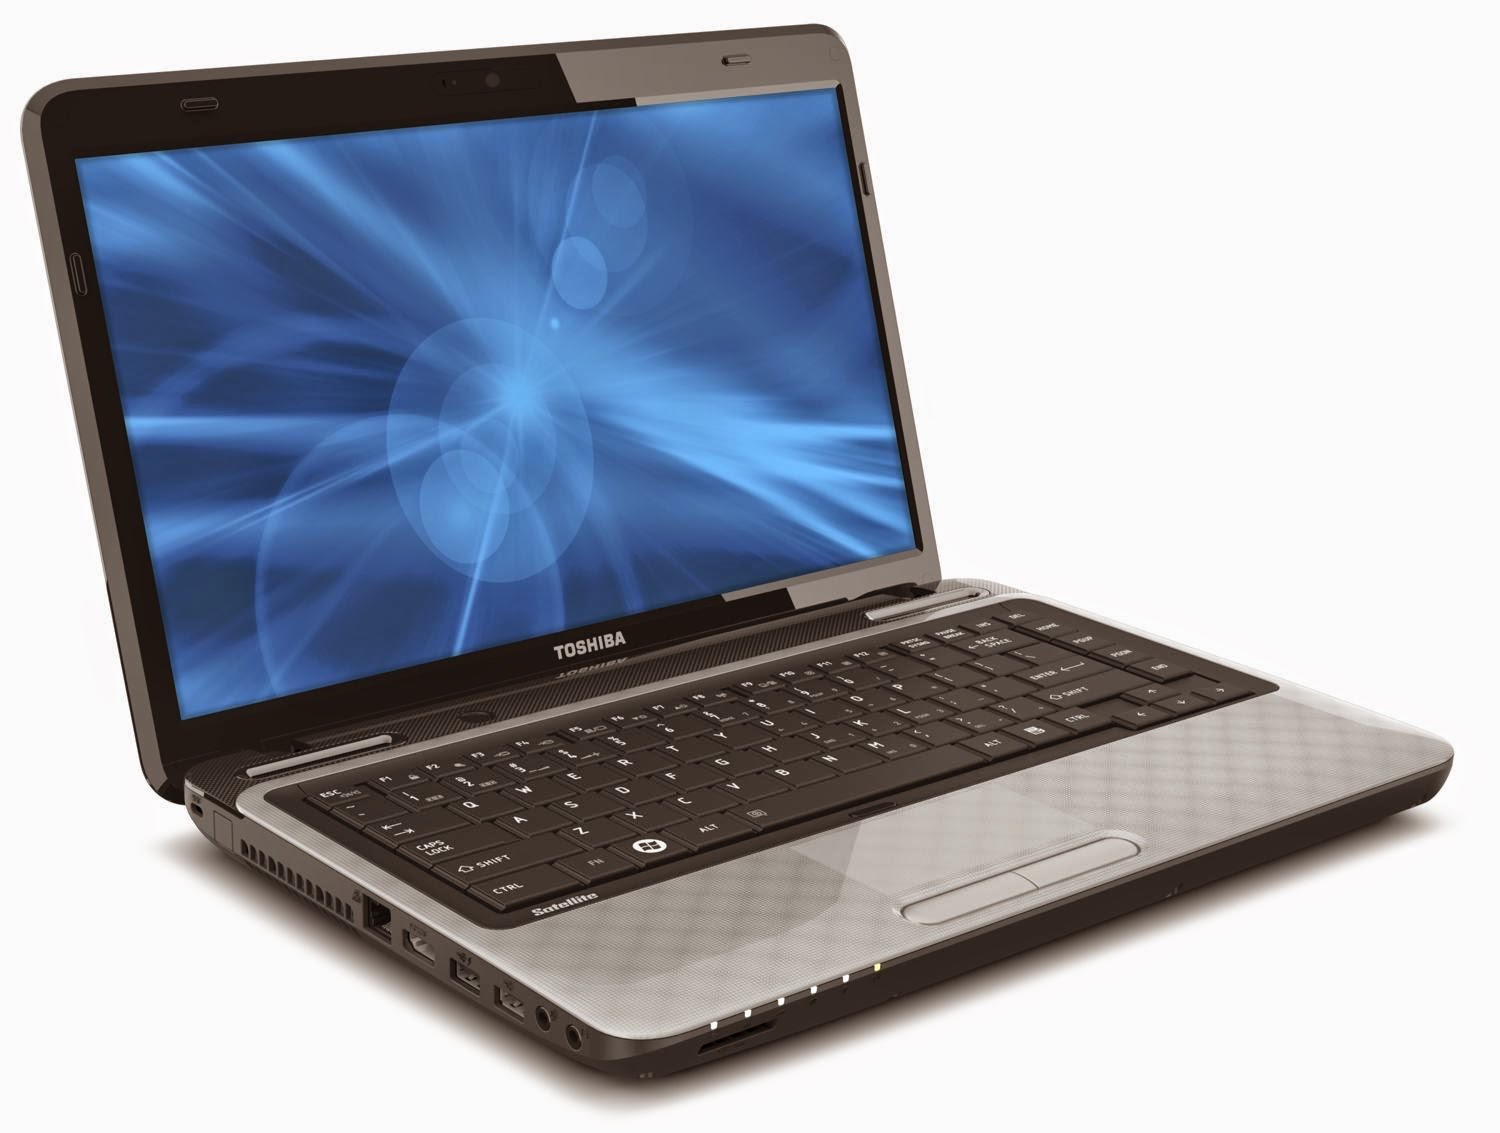 Toshiba Satellite M65 S809 Drivers